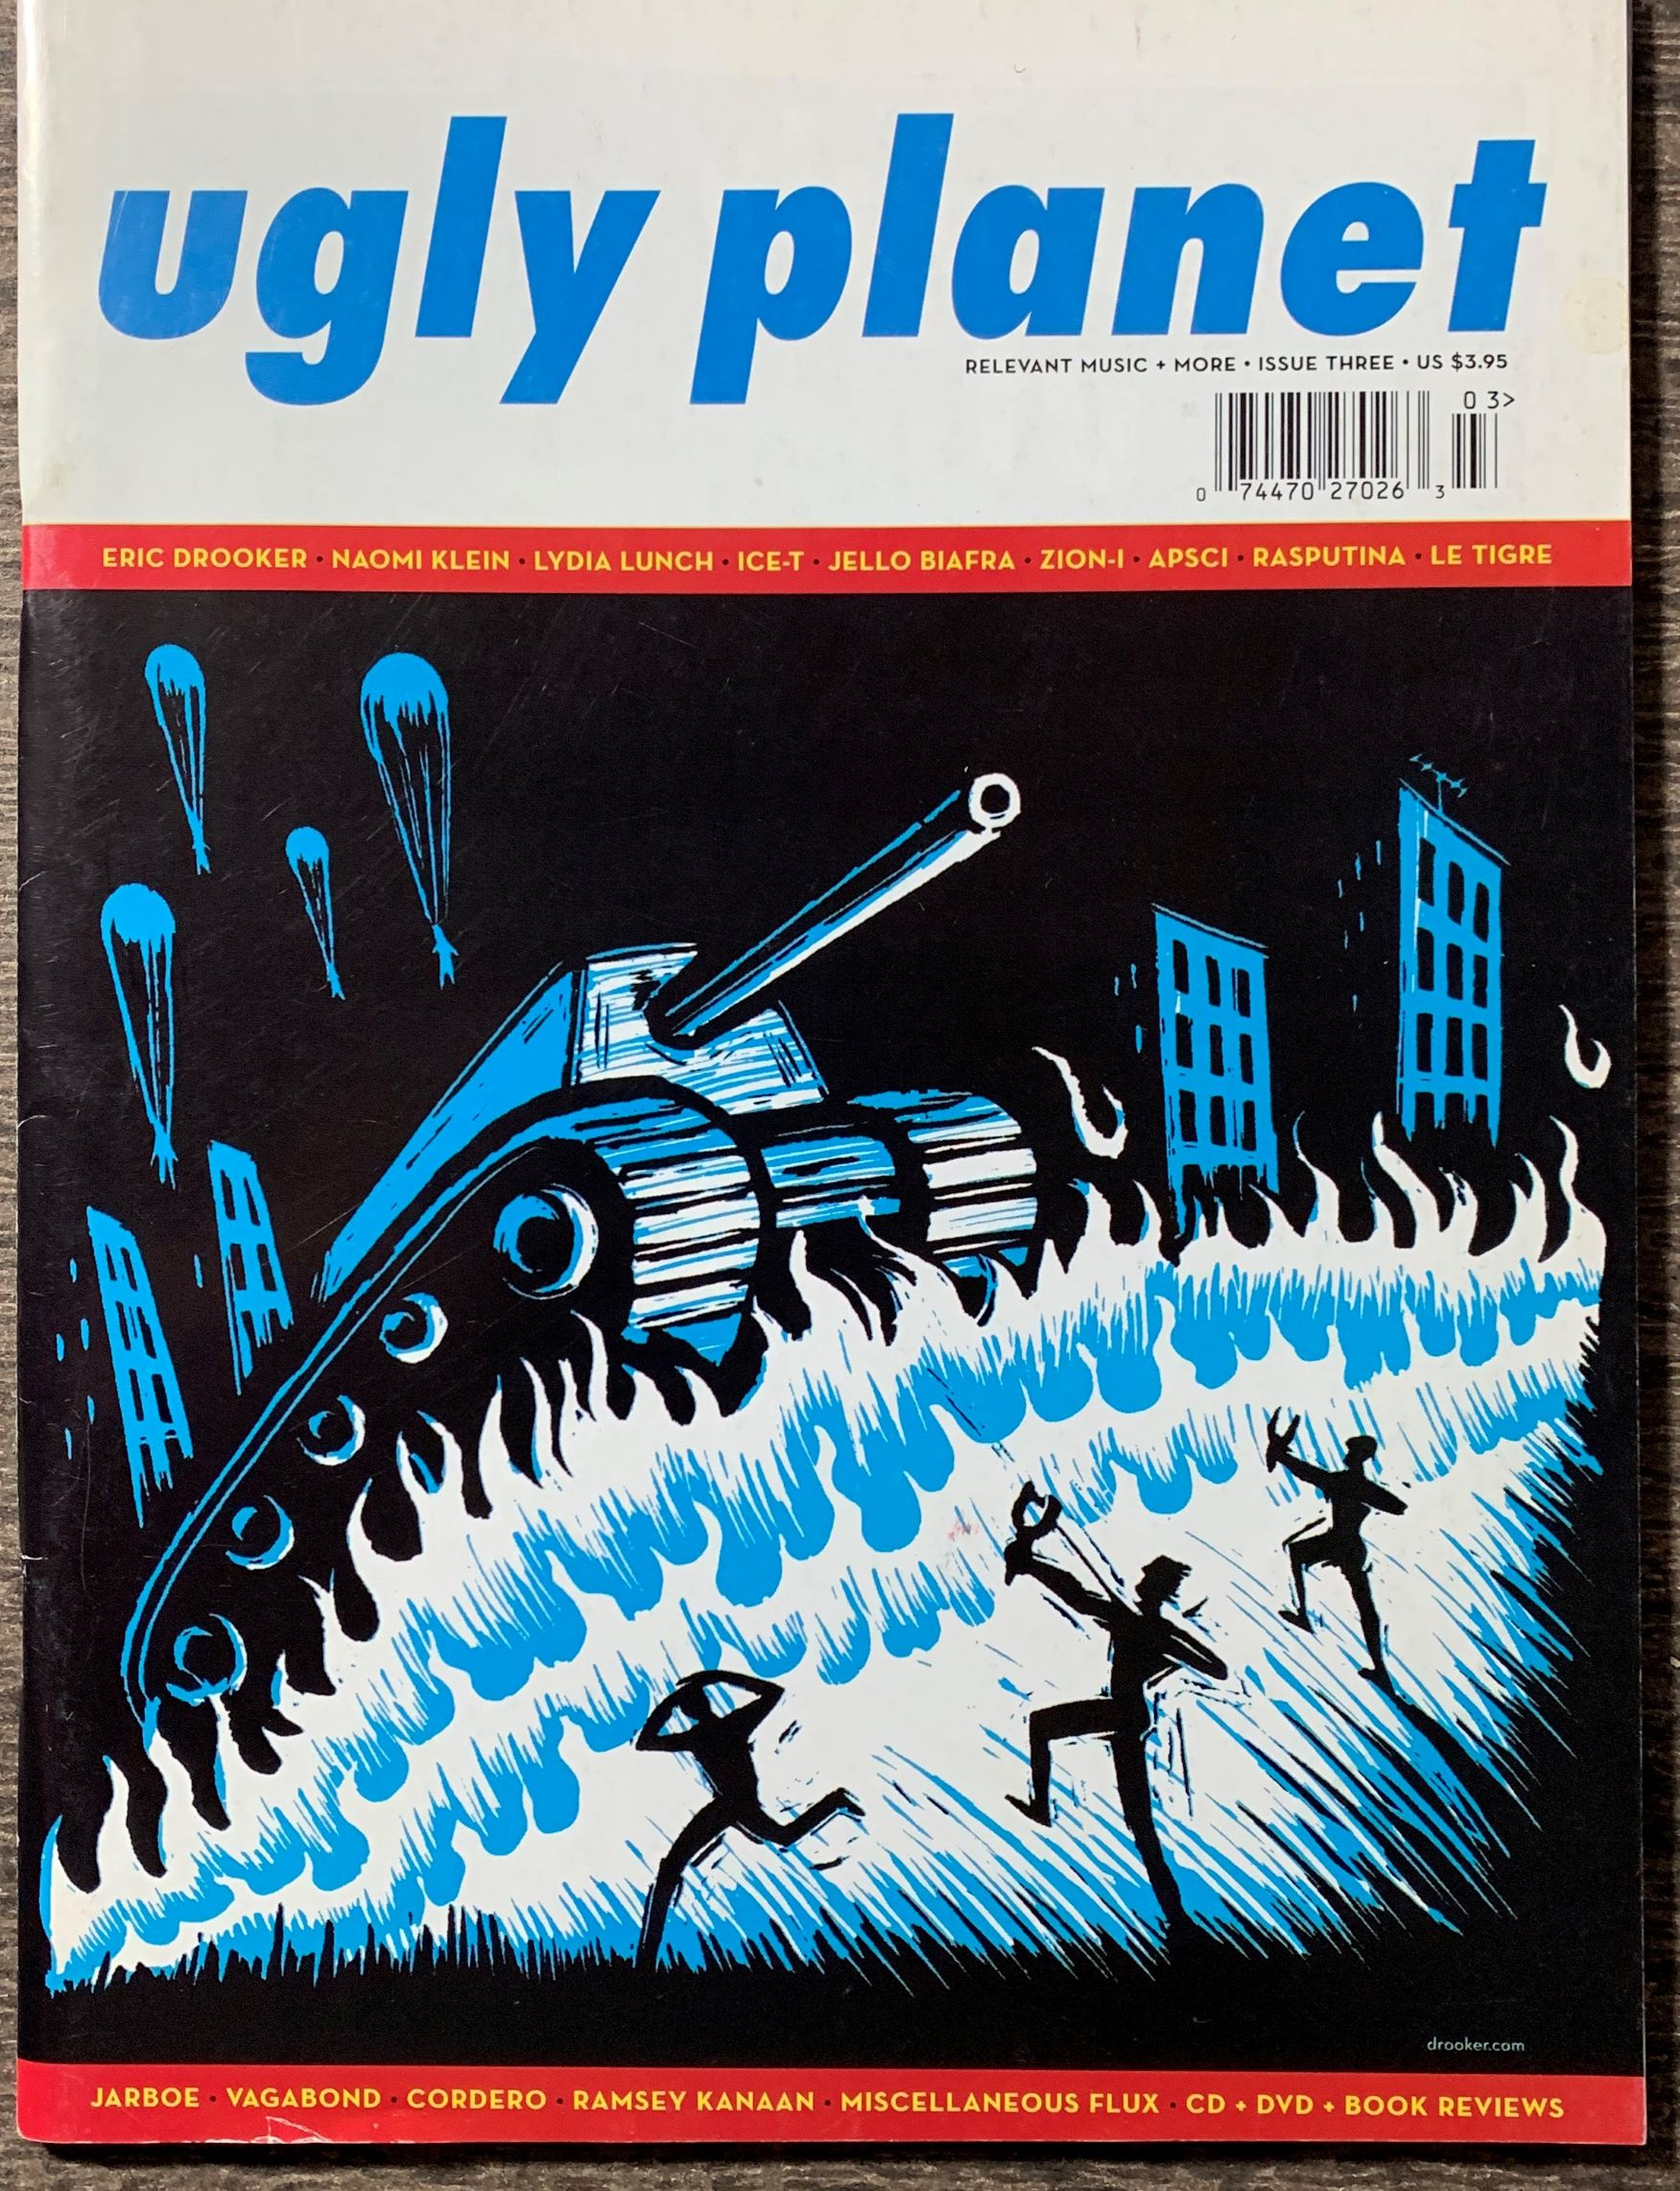 Image for Ugly Planet.  Relevant Music, More, Issue Three.